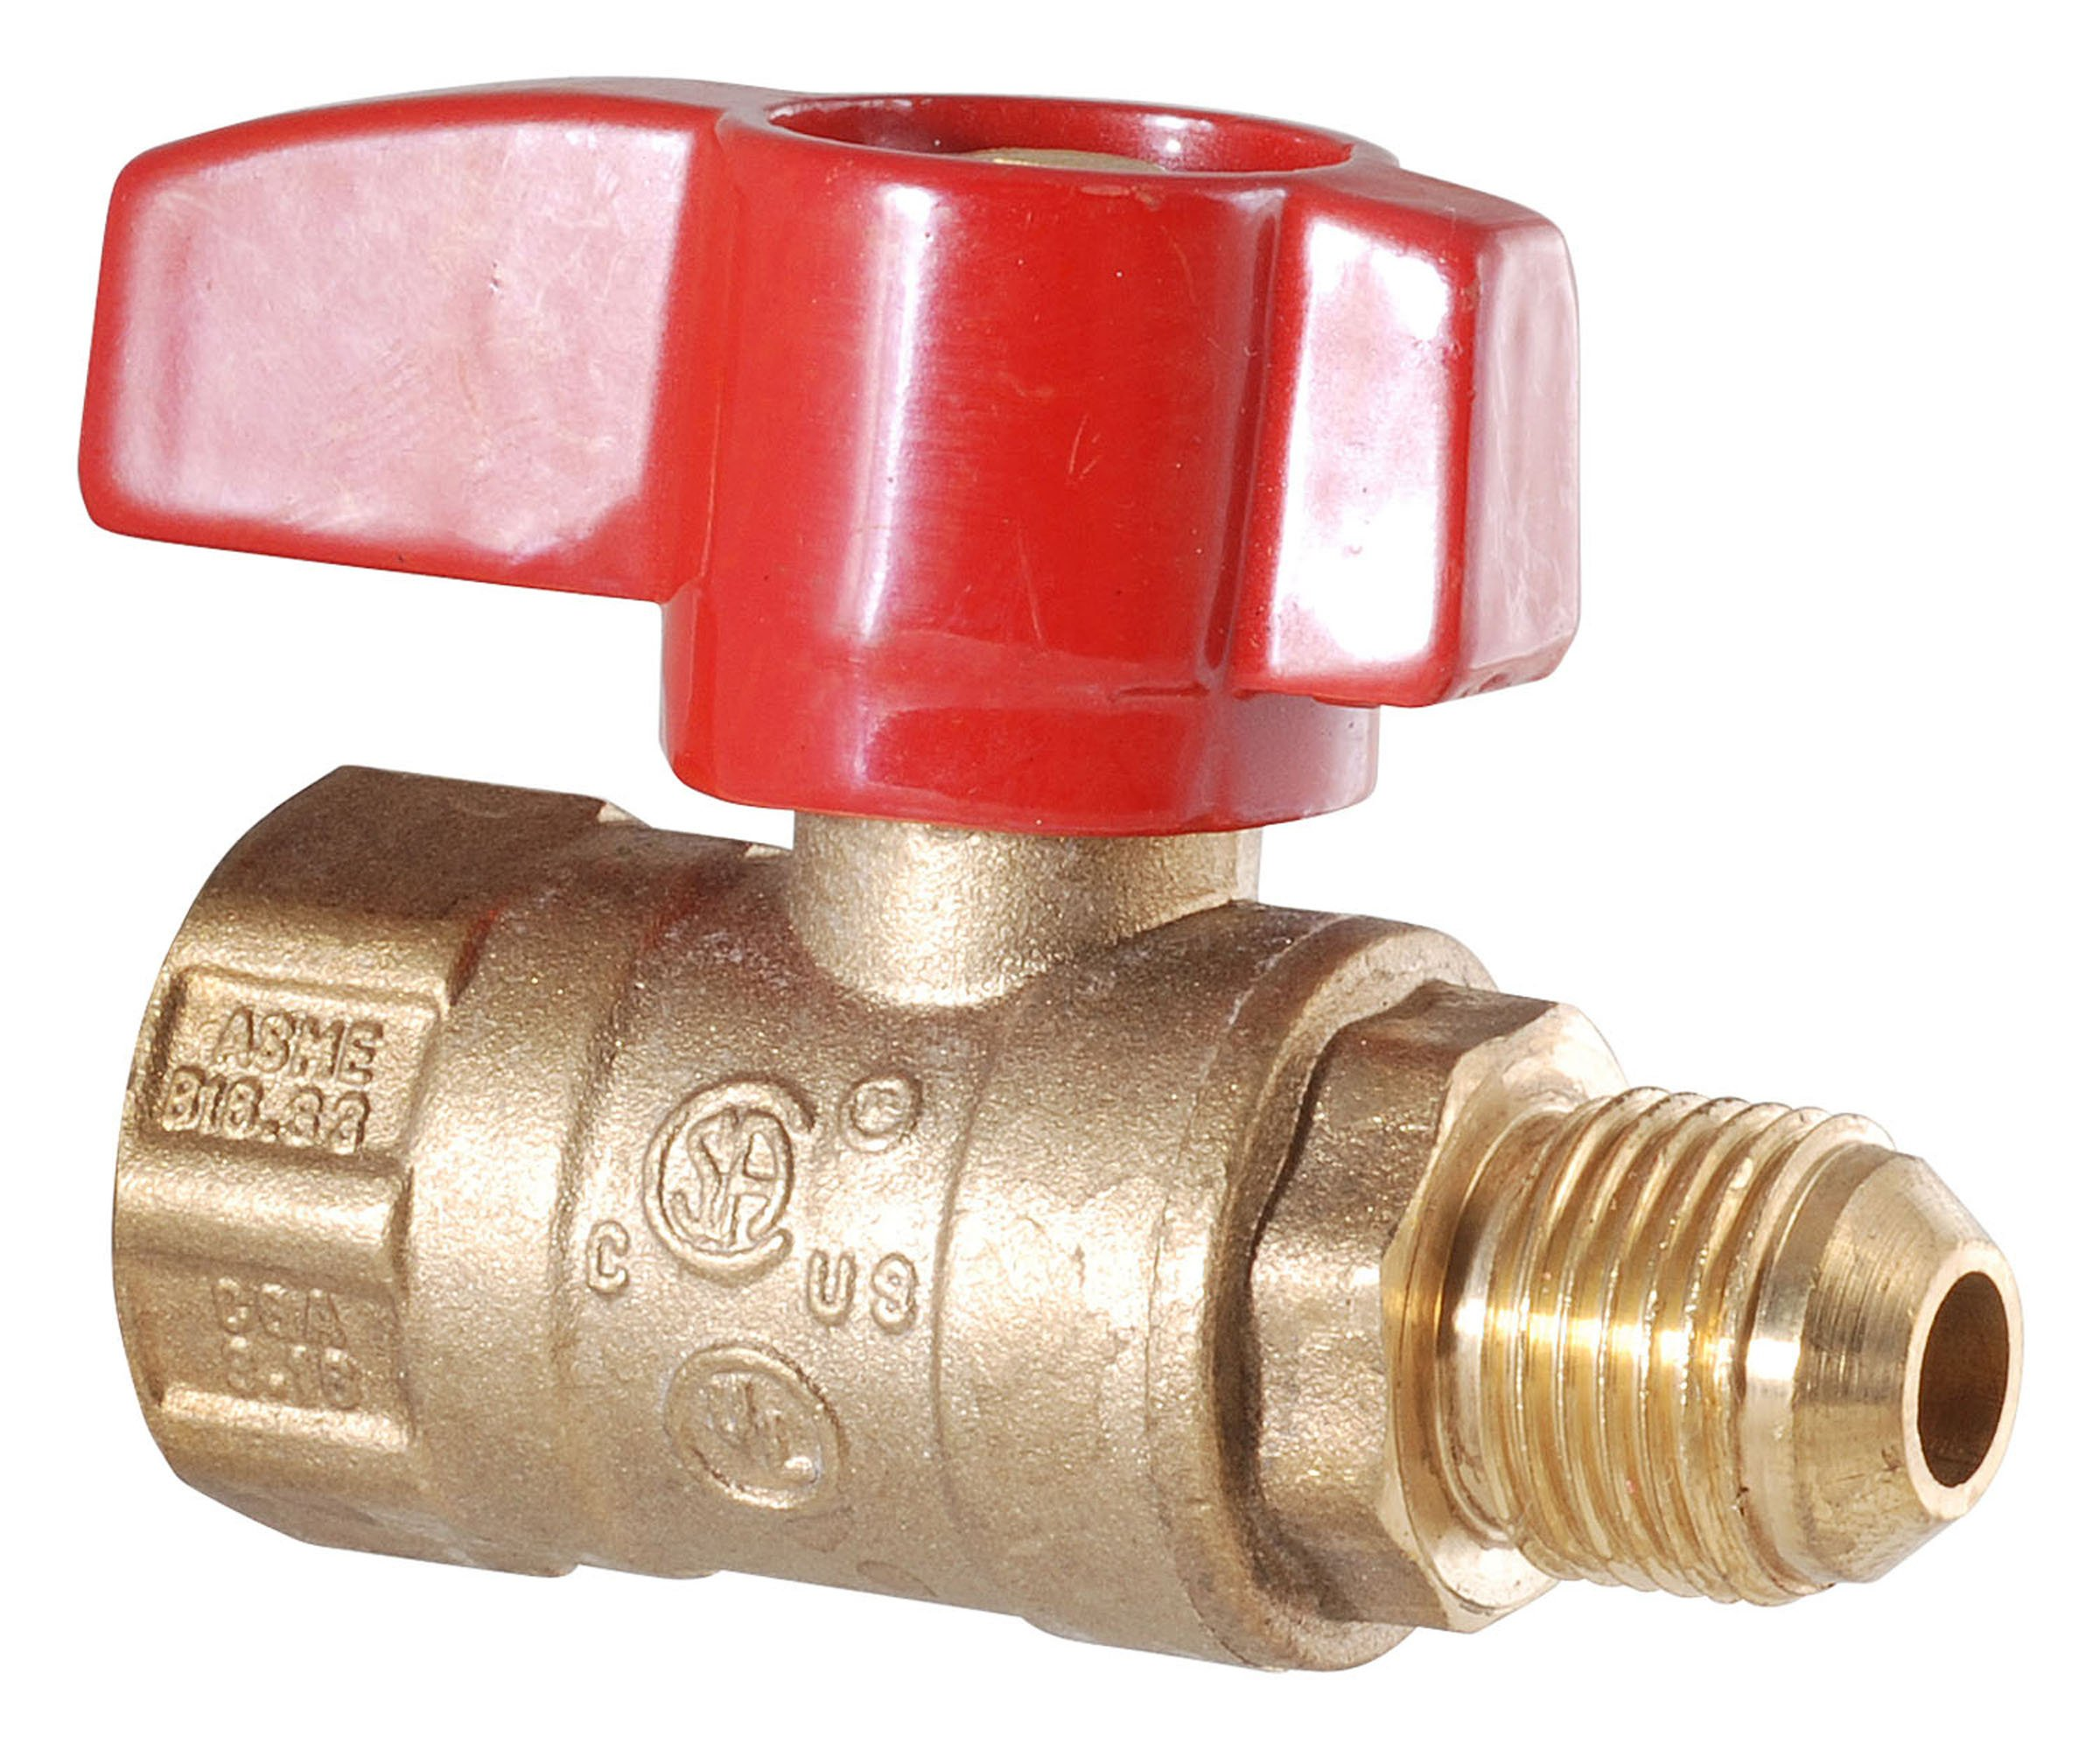 LDR 020 1540 1/2-Inch FIP x 3/8-Inch Flare Male Heavy Duty Gas Ball Valve, Brass by LDR Industries